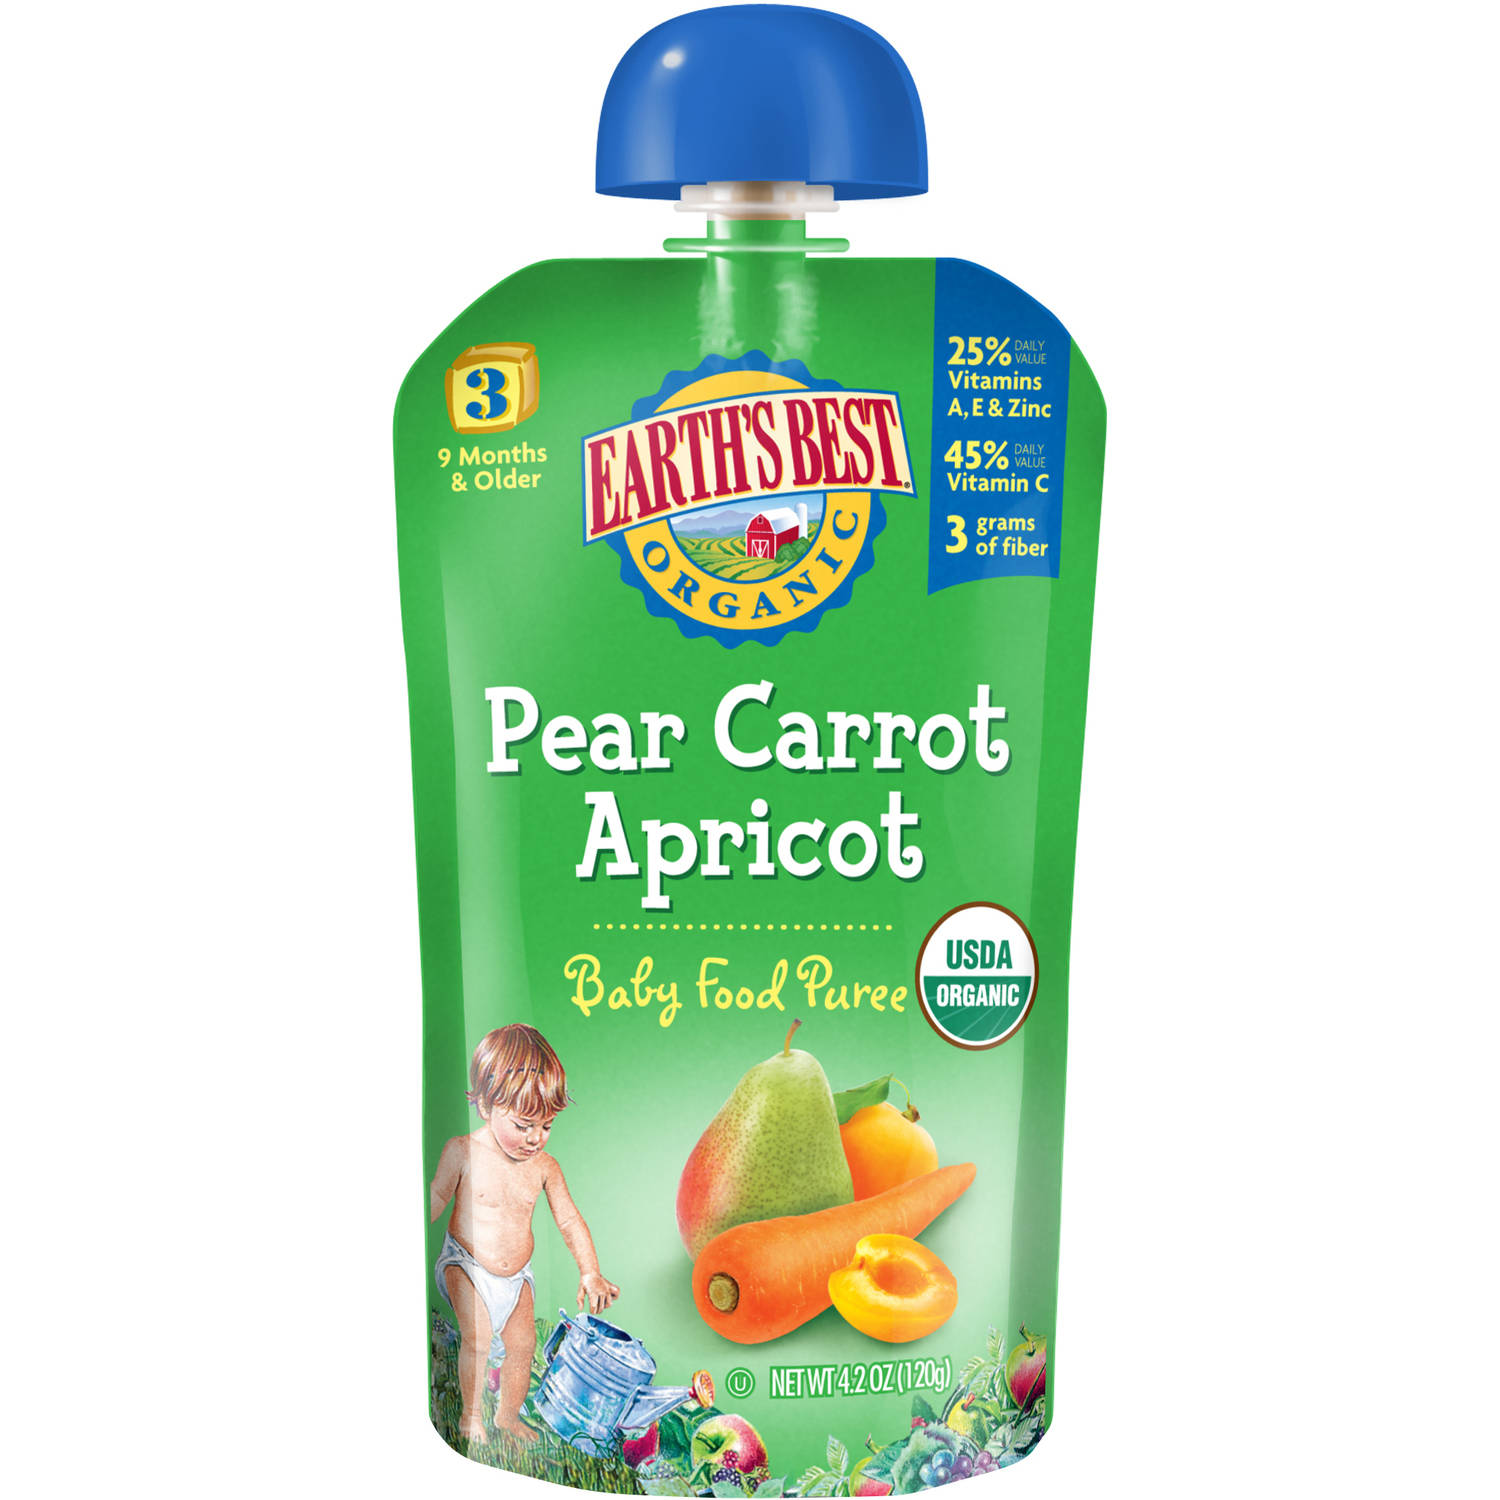 Earth's Best Organic Pear Carrot Apricot Baby Food Puree, 4.2 oz, (Pack of 6)